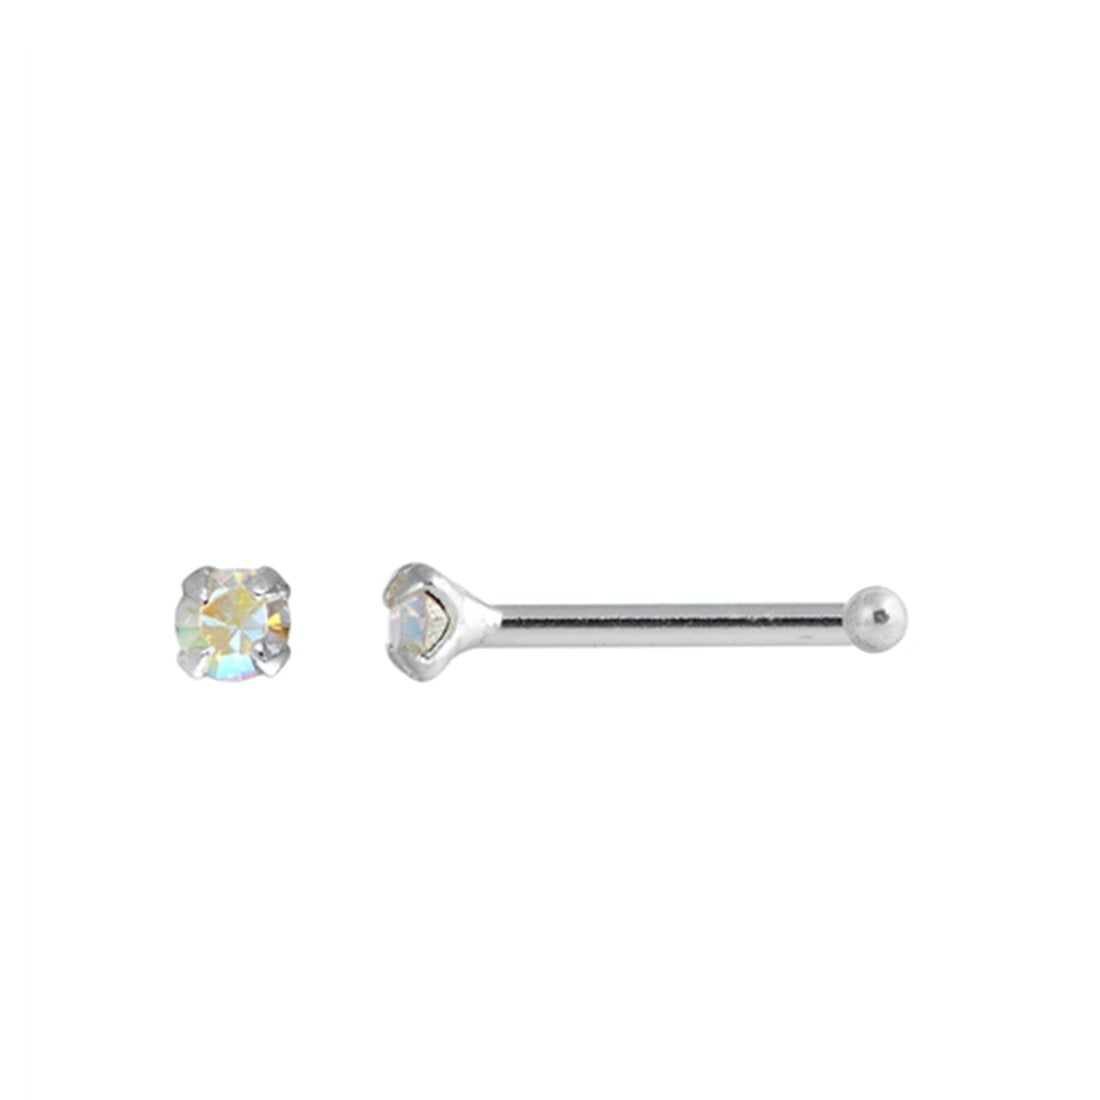 AB Crystal Simulated Cubic Zirconia Nose Stud Ball End 925 Sterling Silver-(20 Nose Studs in a Box)